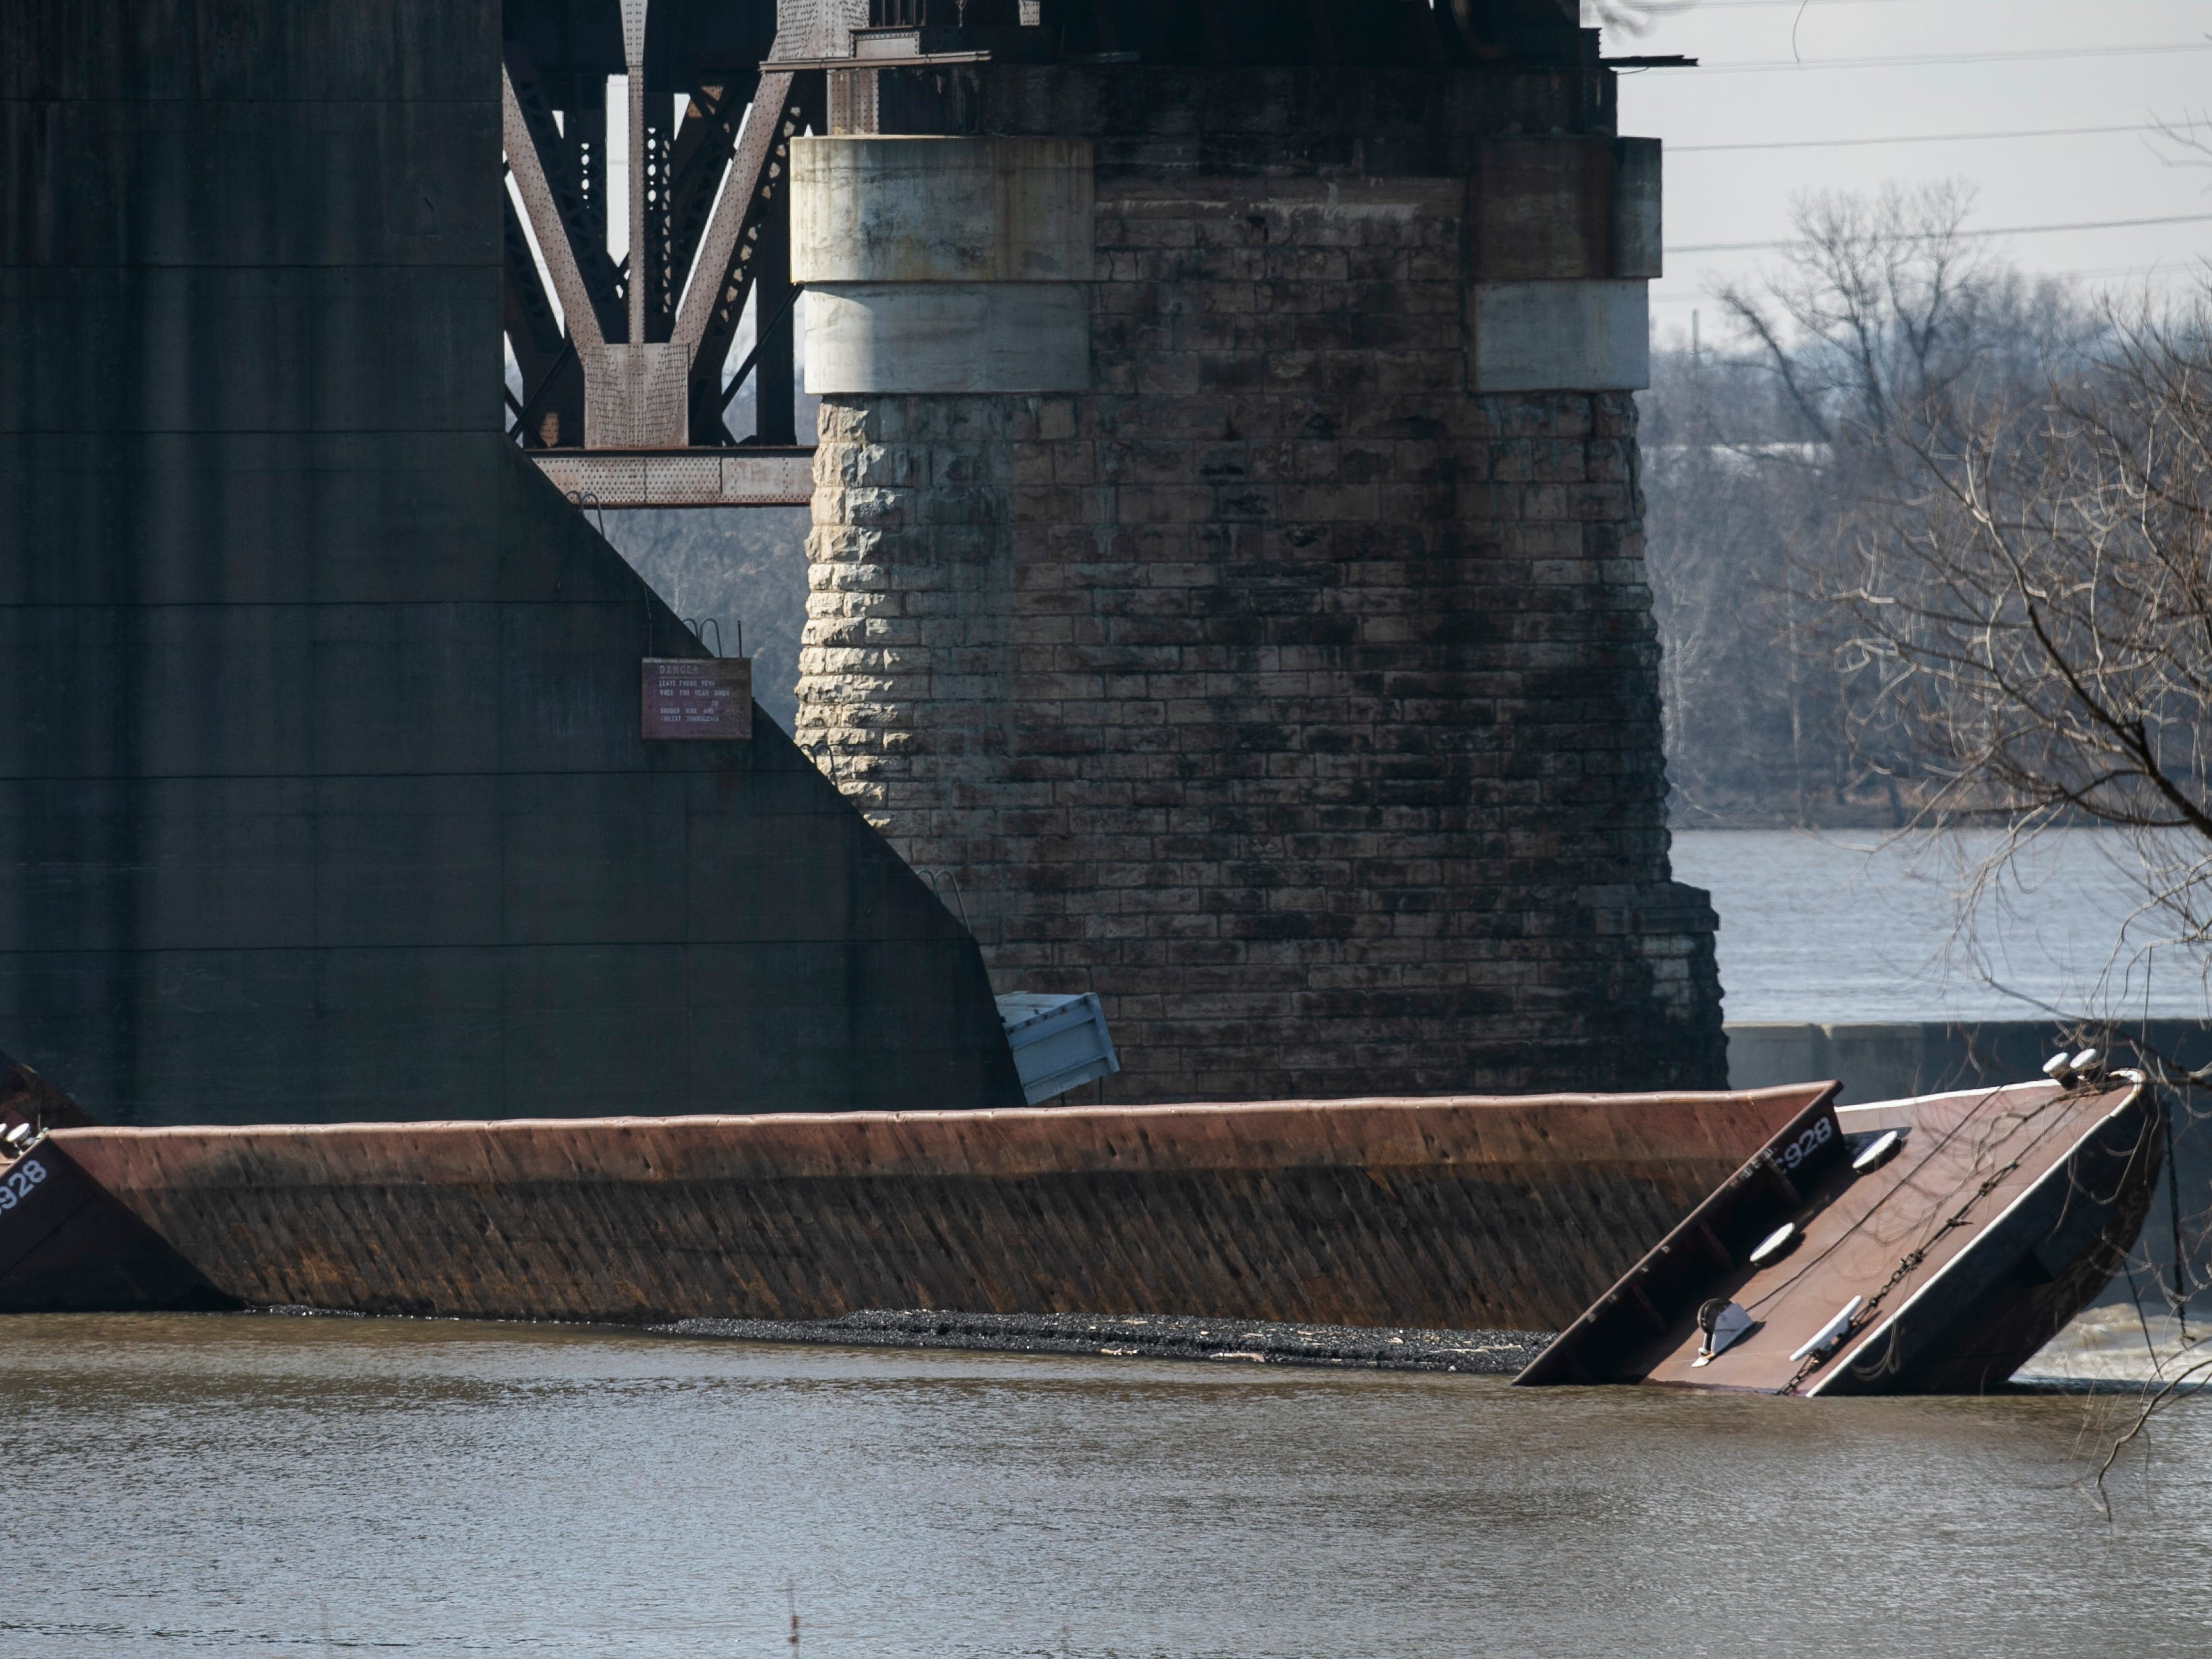 Four barges are still partially underwater and can be seen from Clarksville. Crews are still trying to recover those barges as well as the ones that have sunk. January 14, 2019